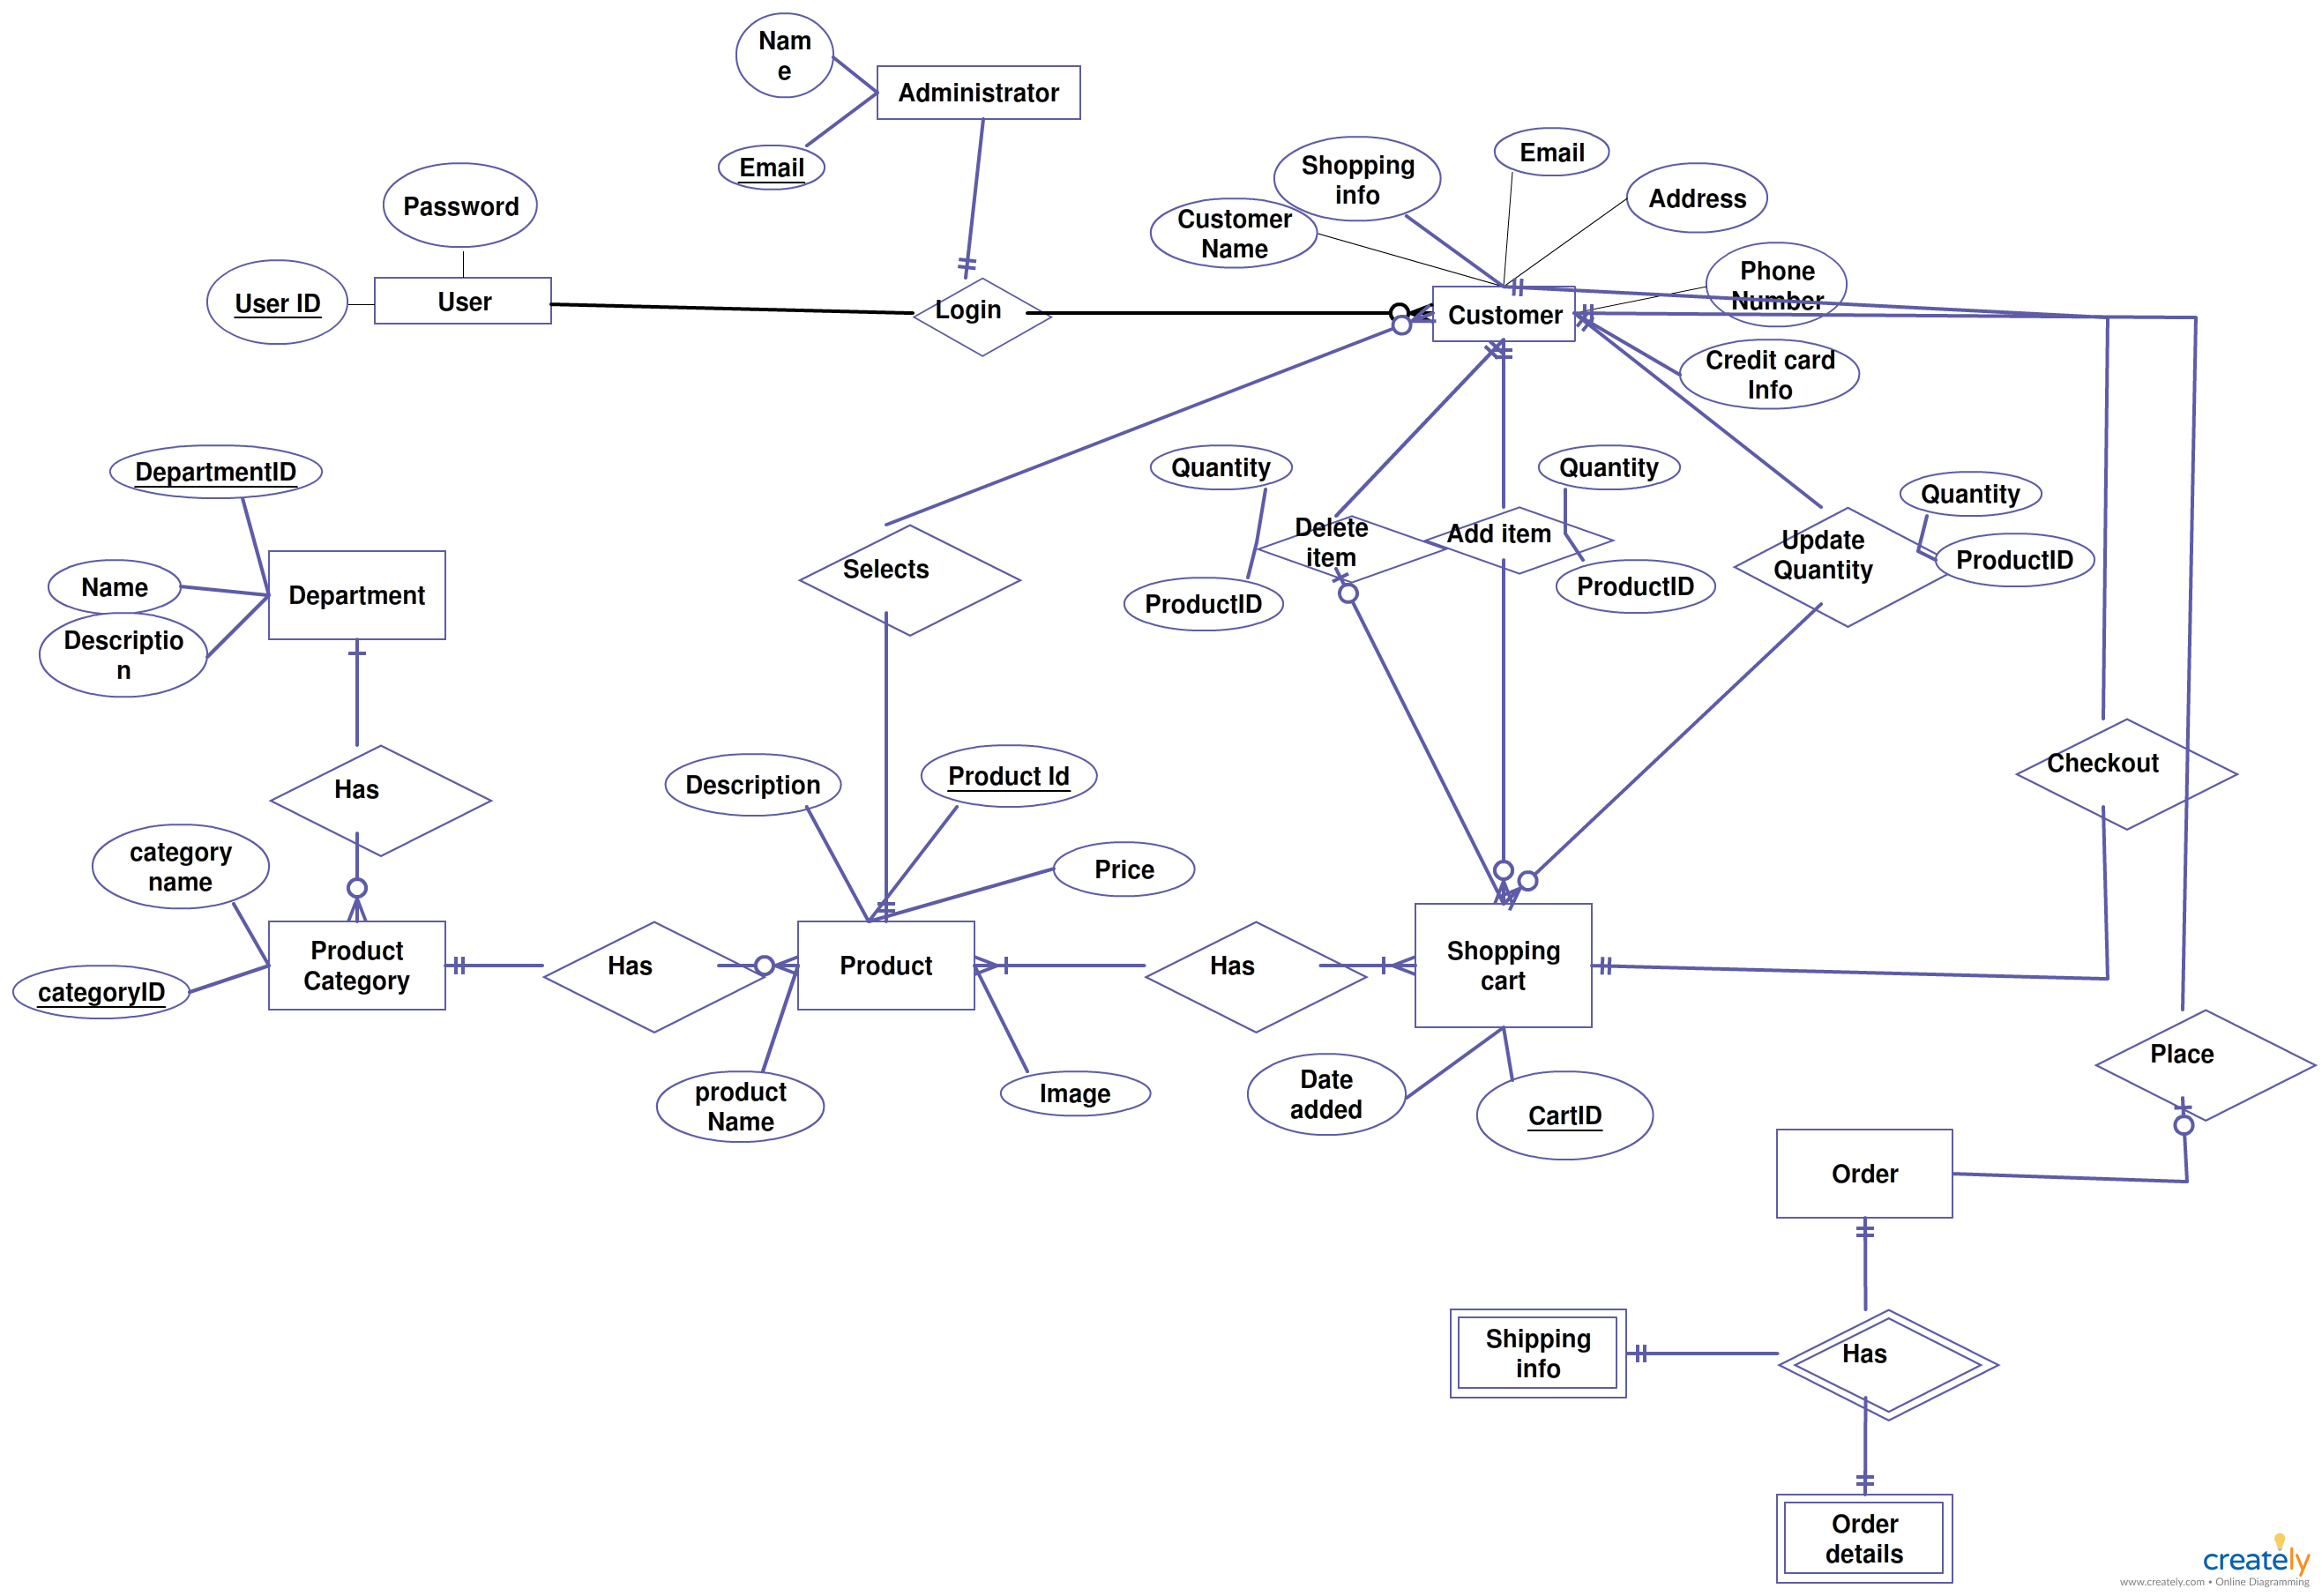 Er Diagrams Help Us To Visualize How Data Is Connected In A General throughout Er Diagram Examples Of Online Shopping